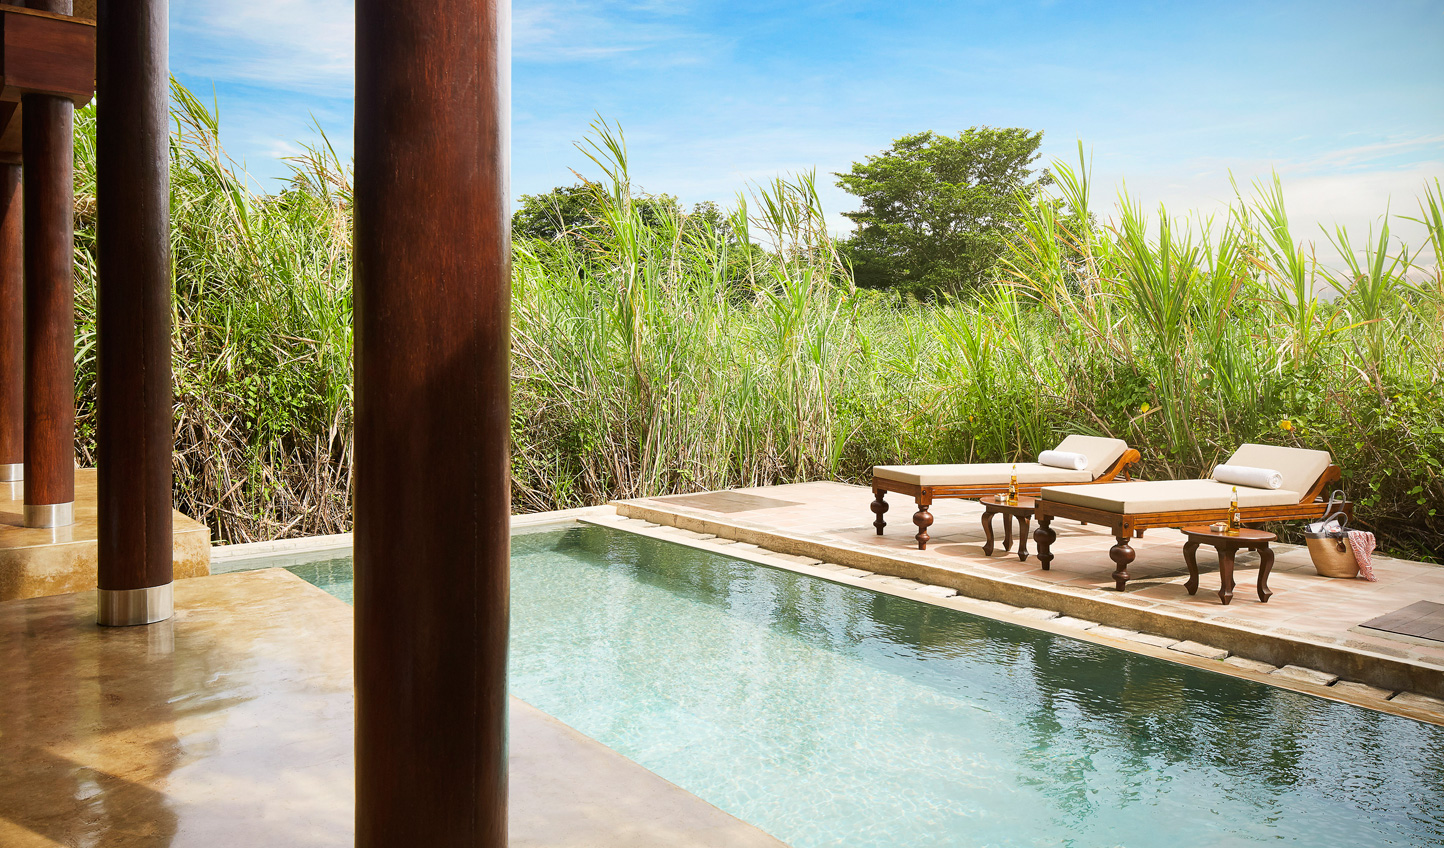 Peaceful relaxation by your private plunge pool